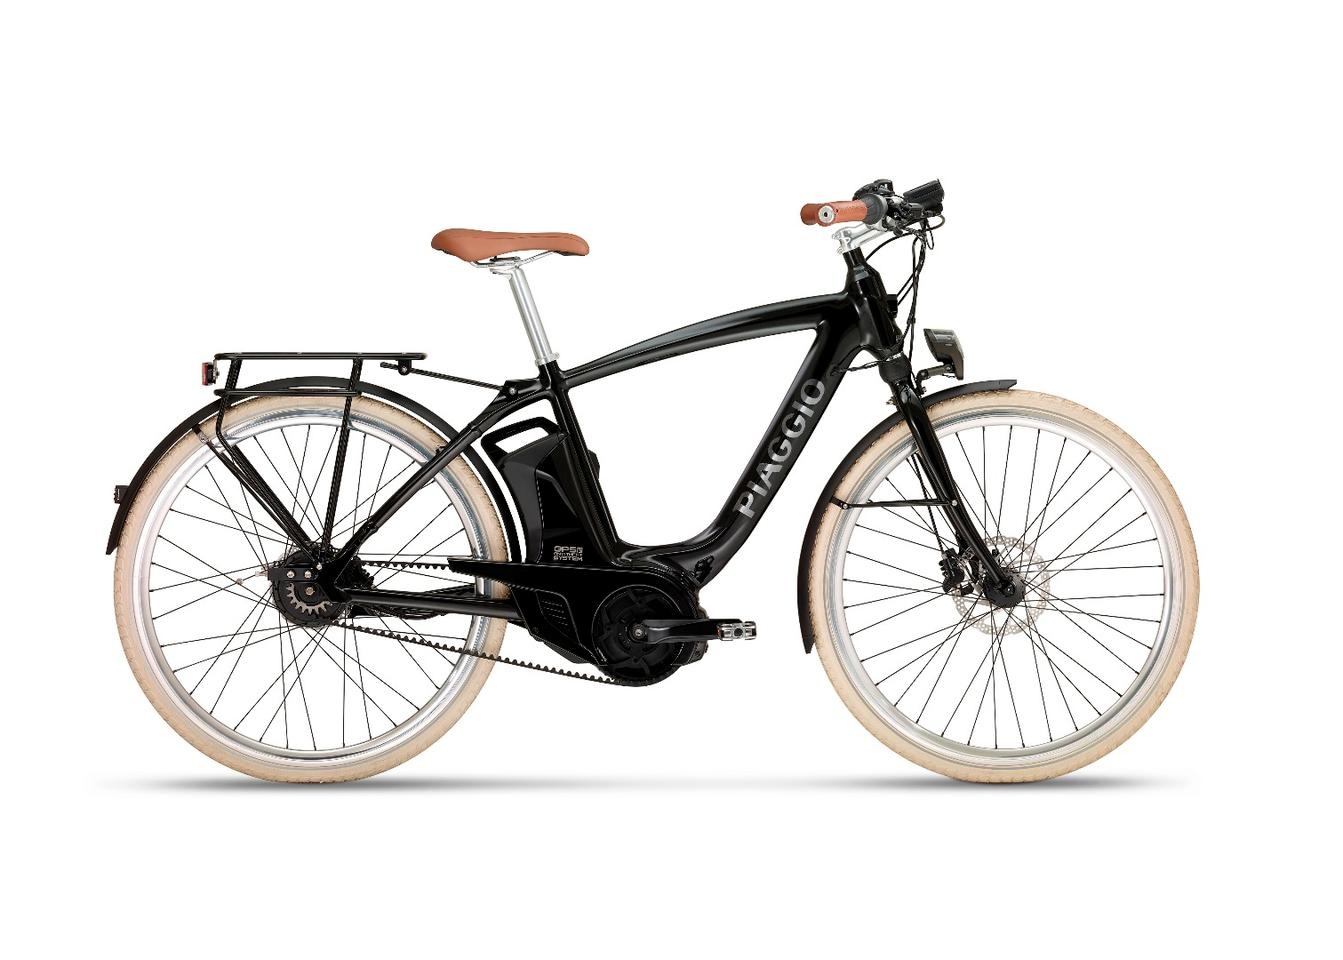 A Comfort Wi-Bike model, featuring a 250 W electric motor between the pedals, a 418 Wh Li-ion battery pack and a GPS/GSM module for peace of mind tracking